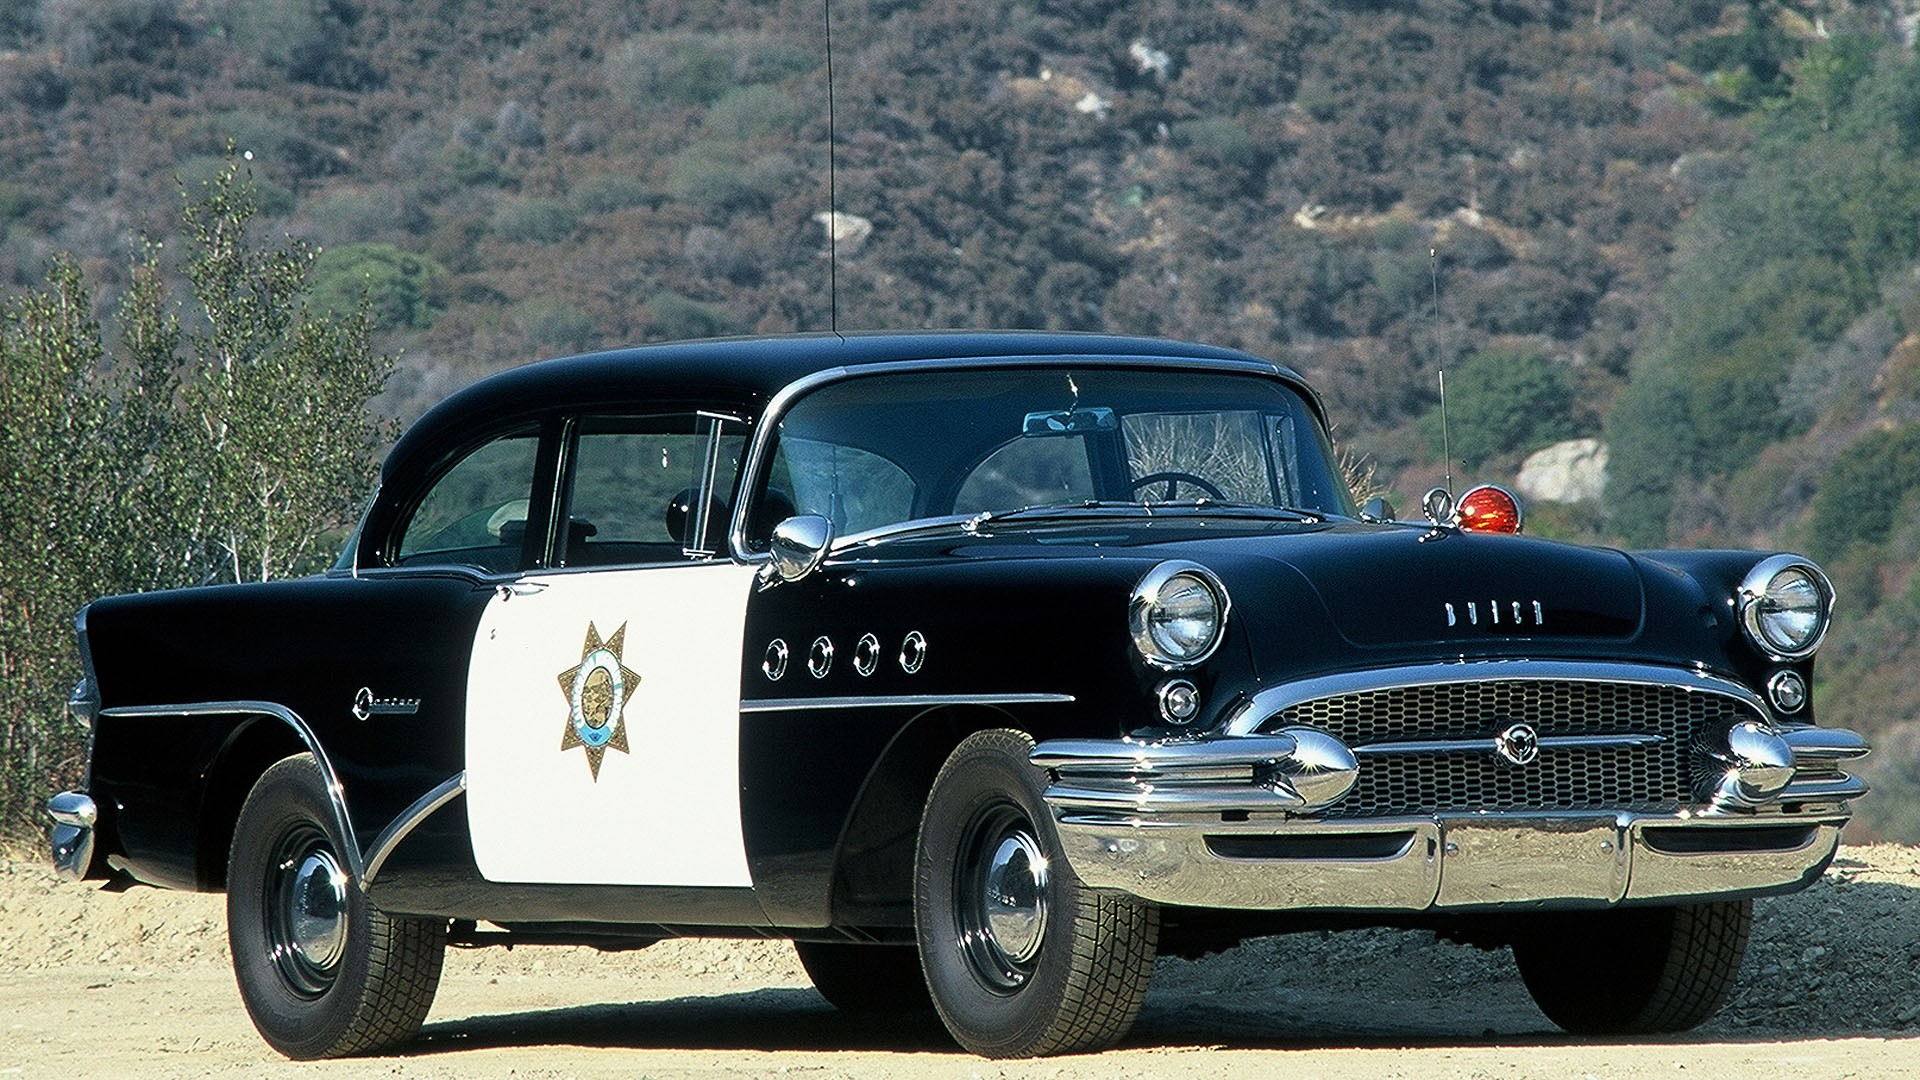 Cool Police Cars Wallpaper Wallpapersafari